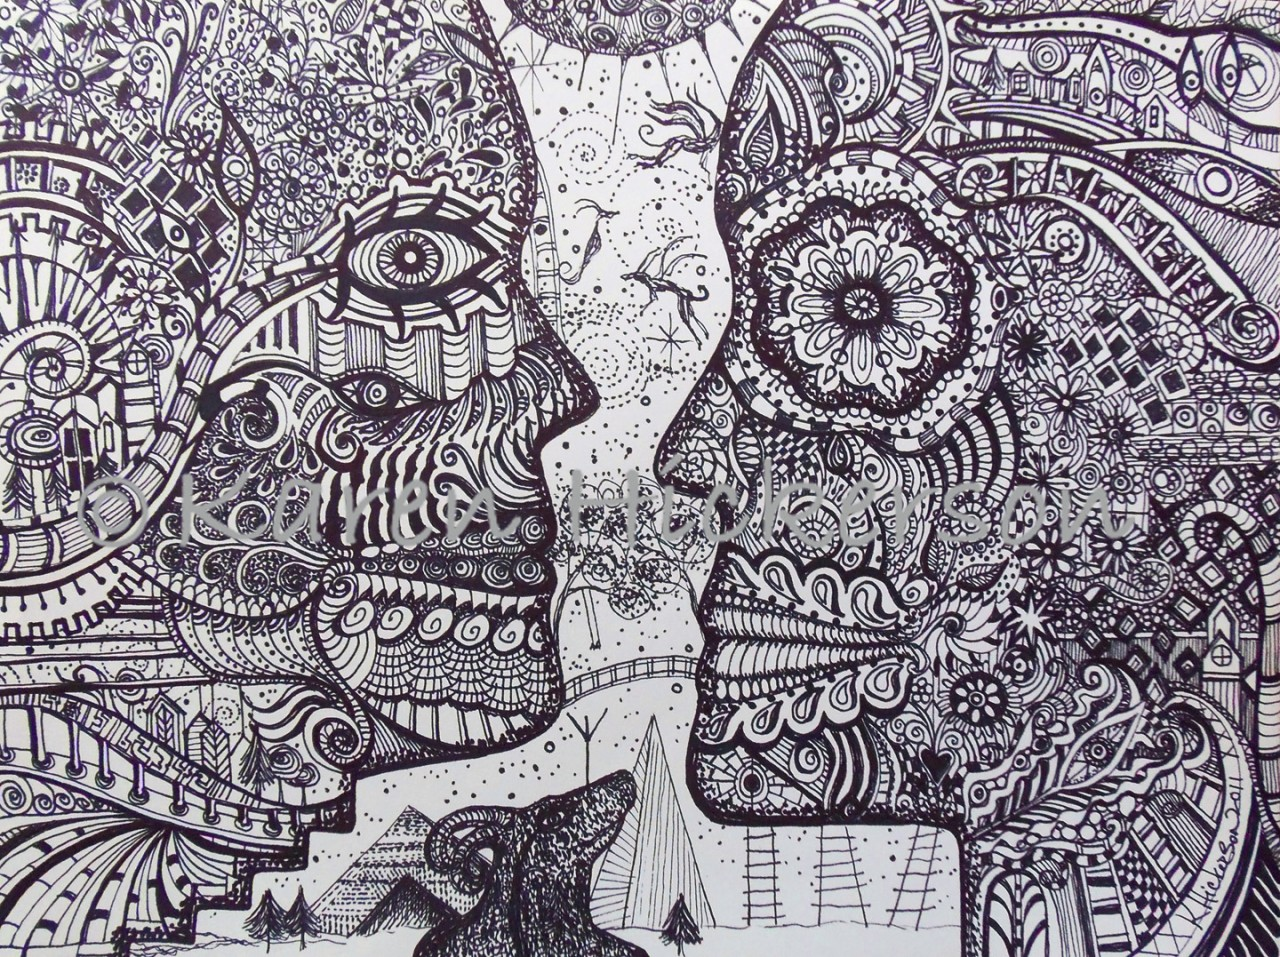 karen hickerson pen and ink drawing outsider art abstract print like dali escher. Black Bedroom Furniture Sets. Home Design Ideas